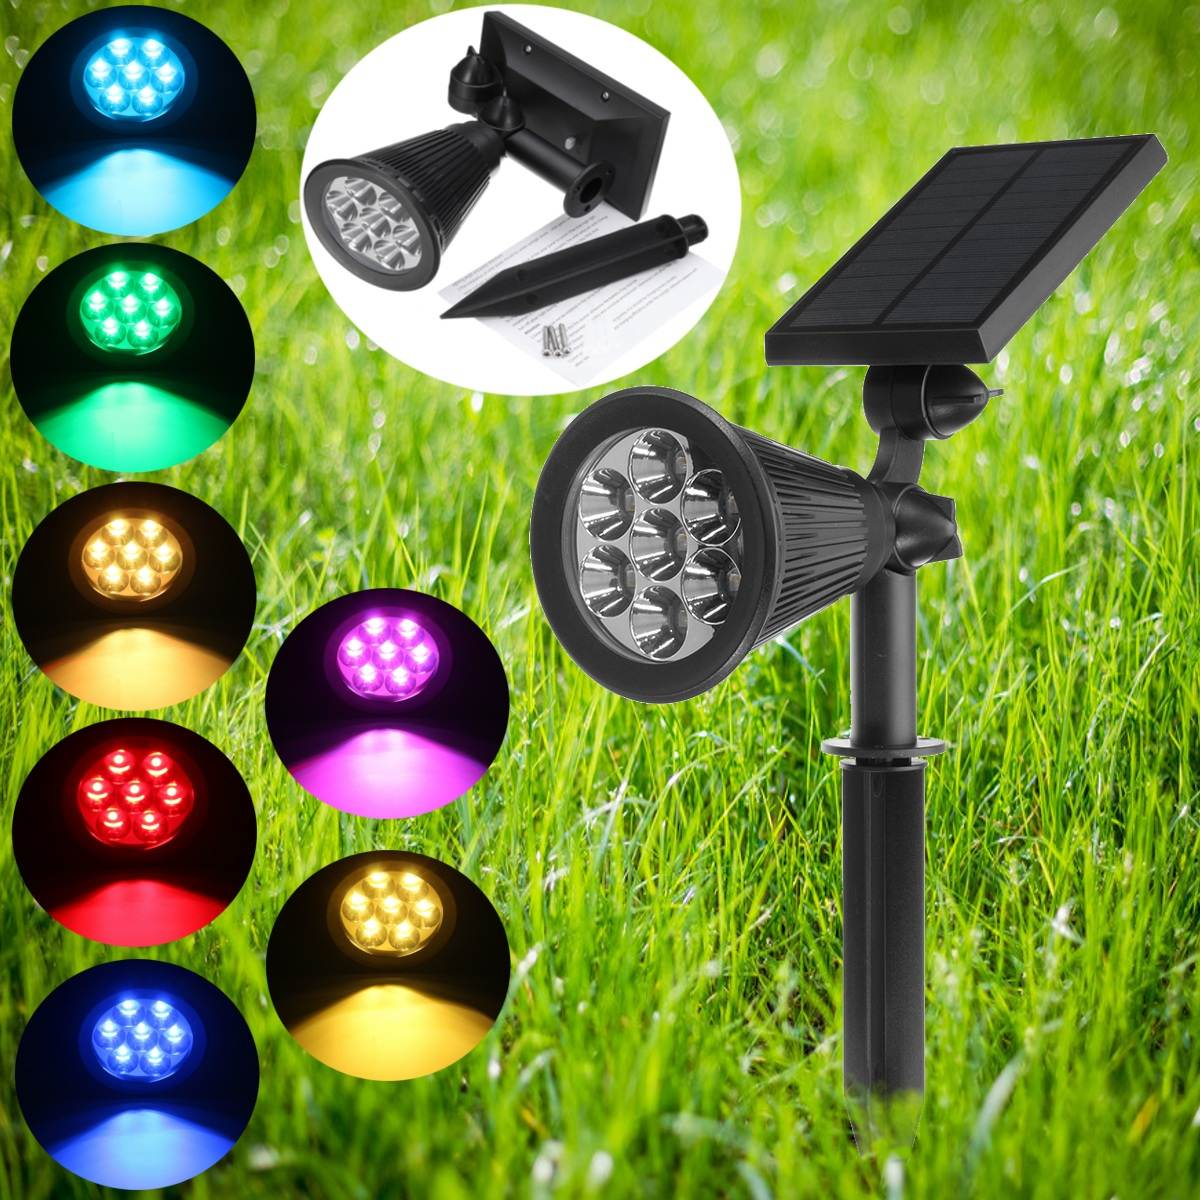 Light Sensor Solar Powered 7 RGB LED Solar Light LED Garden Lamp Spot Light Outdoor Lawn Landscape Spotlight Lighting 3W solar powered 6w 100 led rgb light water resistant flexible tube light white black